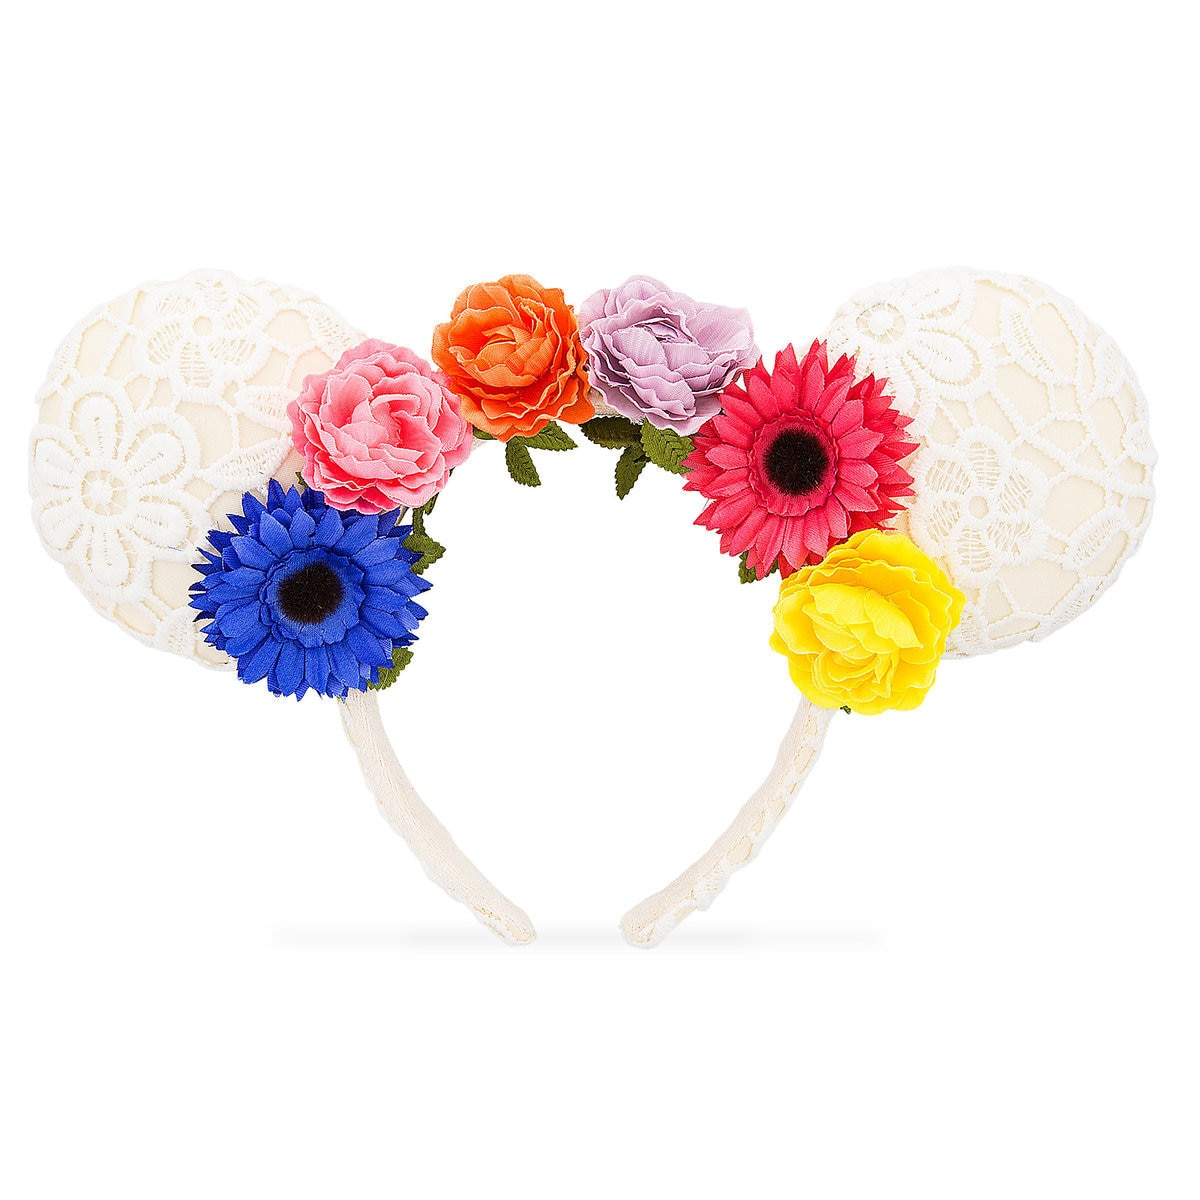 Minnie mouse floral ears headband shopdisney product image of minnie mouse floral ears headband 1 izmirmasajfo